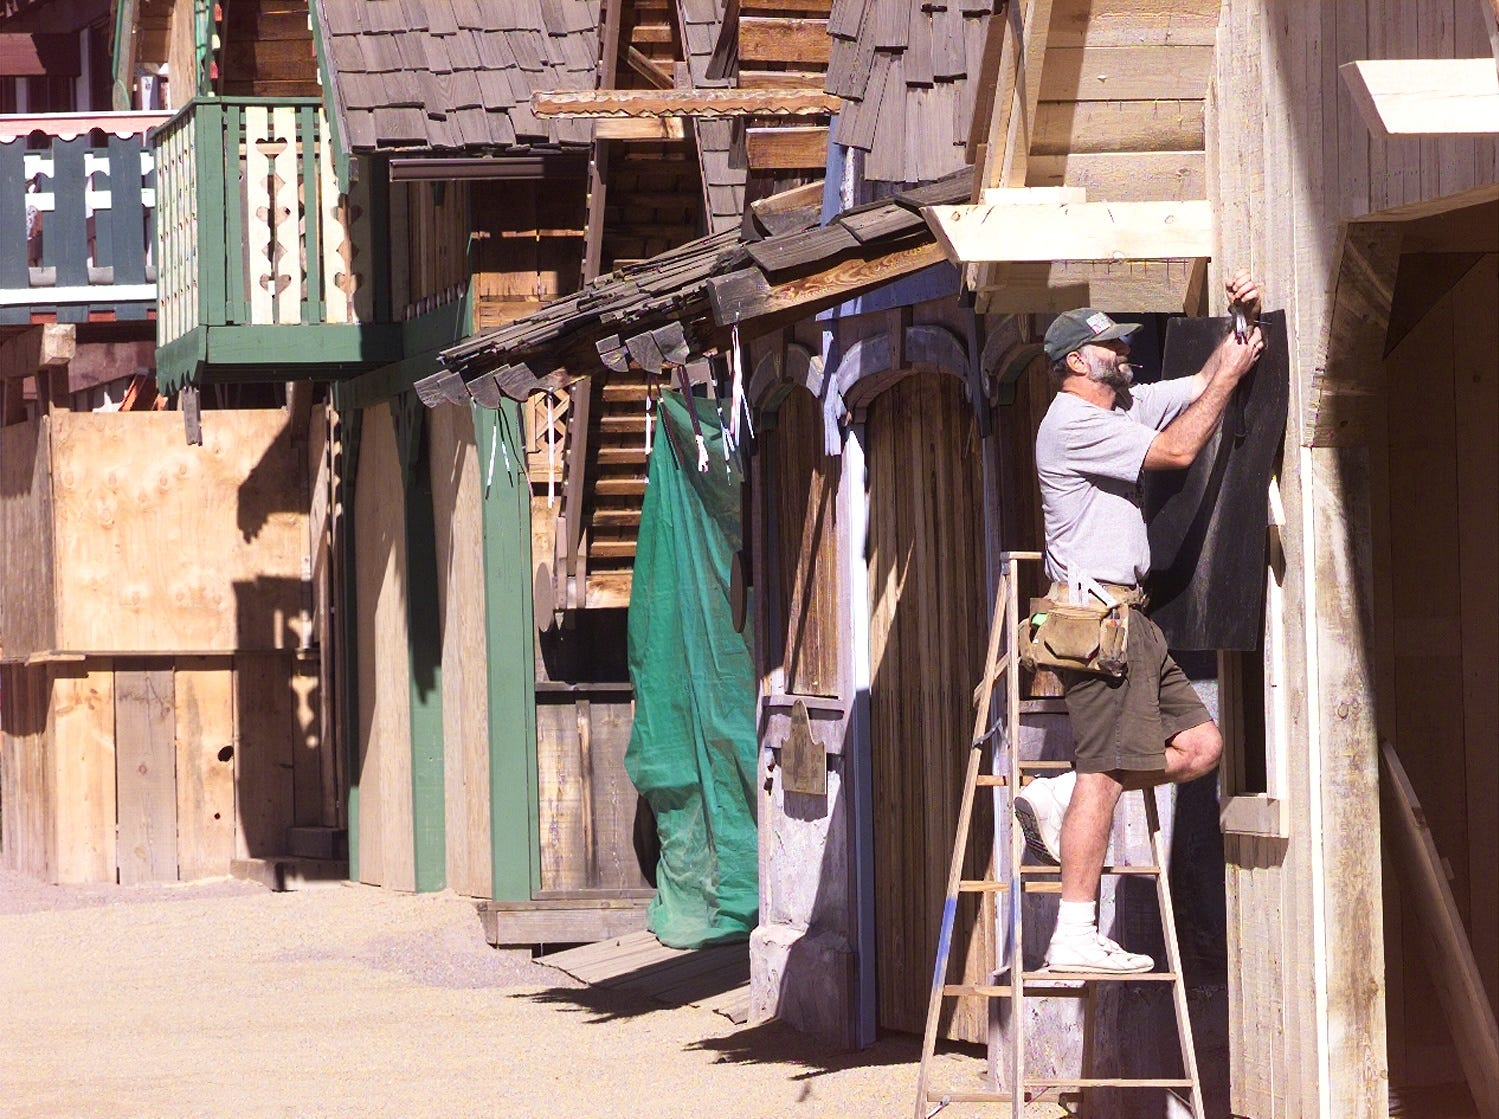 John Lidington helps prepare the Renaissance villiage for opening in 1999.